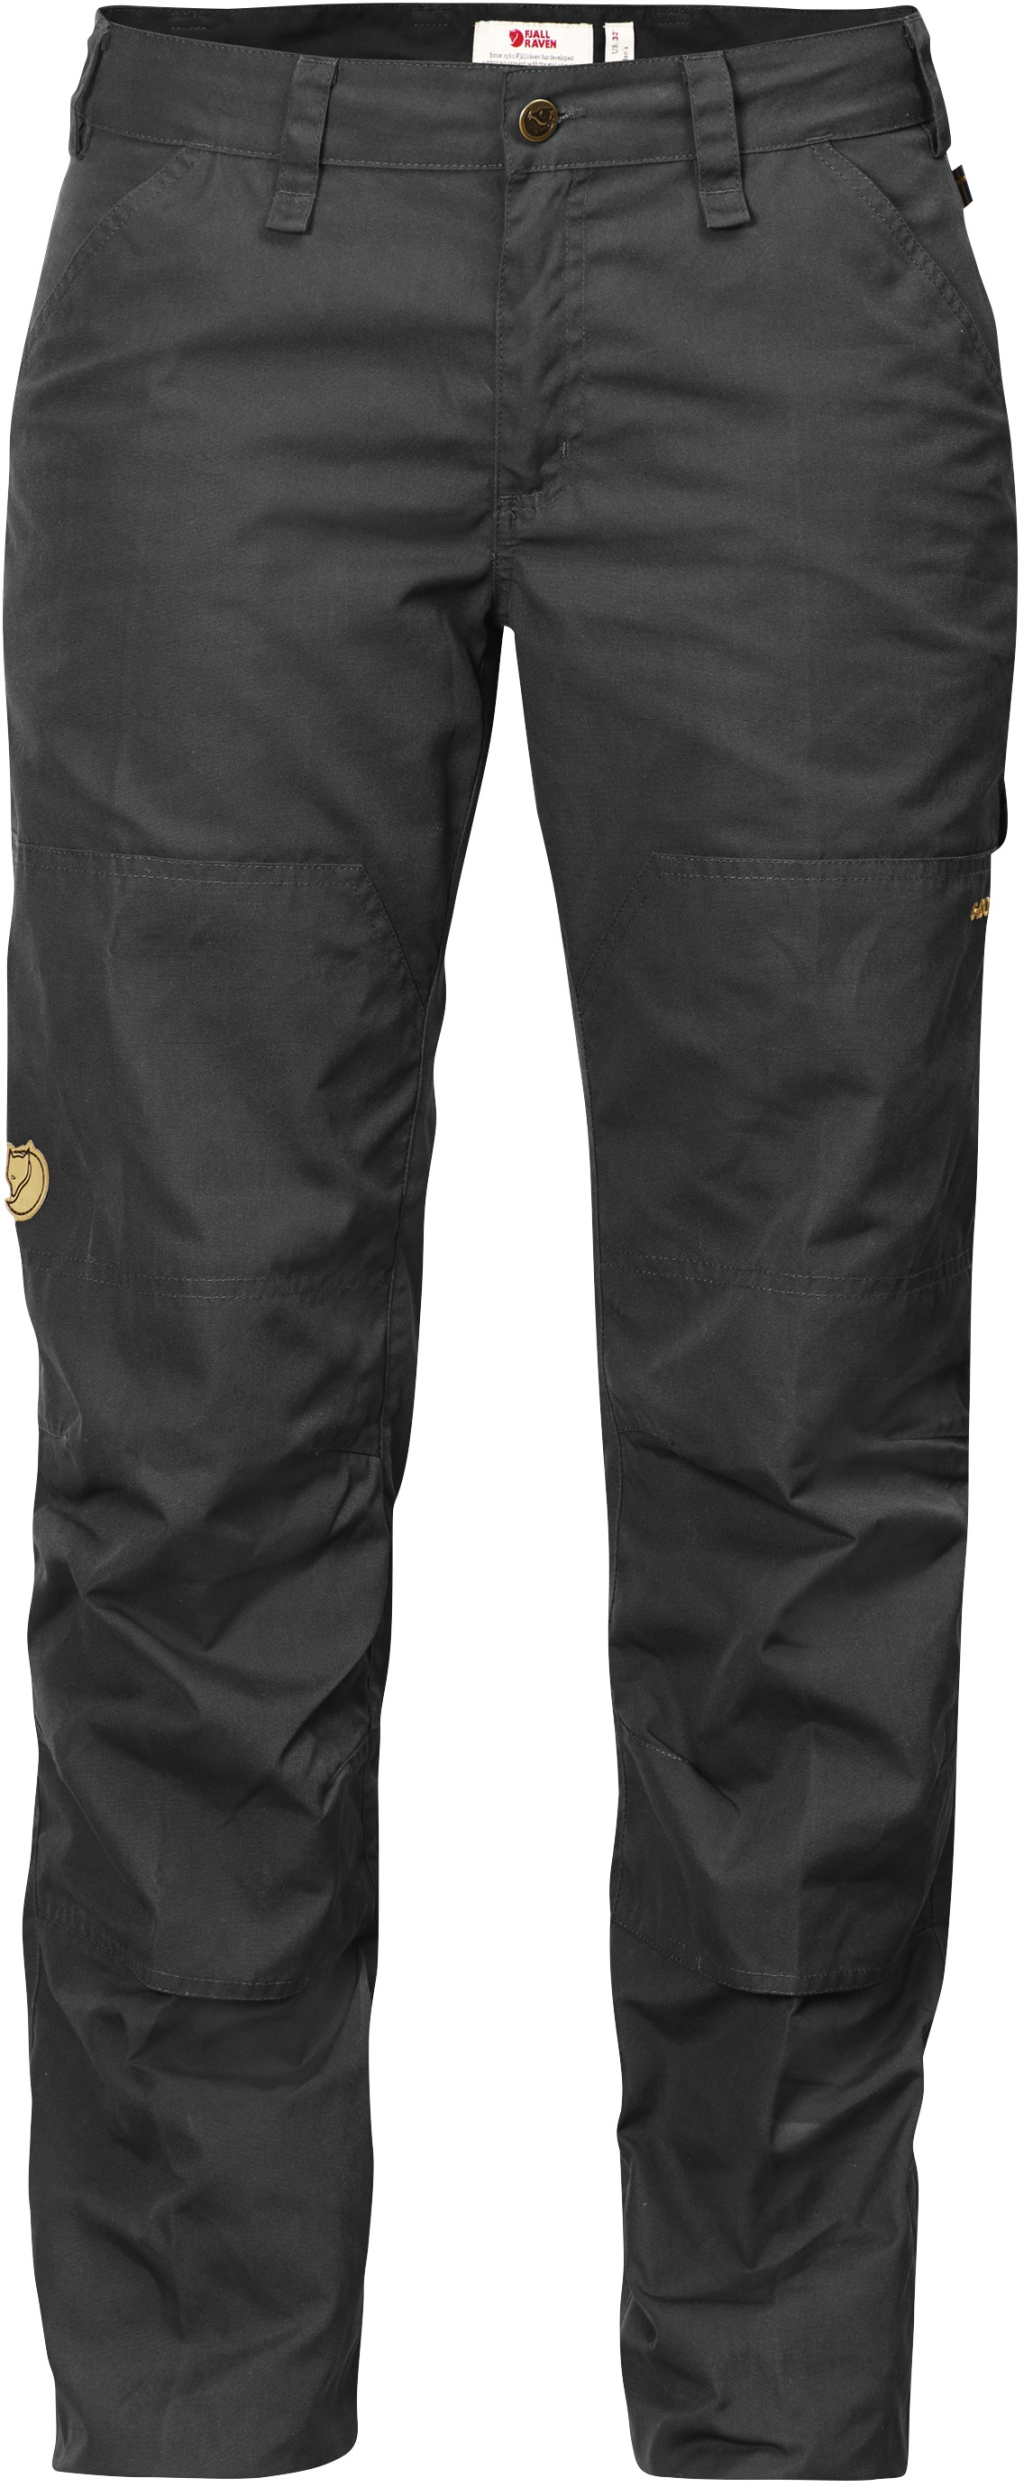 FjallRaven Barents Pro Jeans W Dark Grey-30